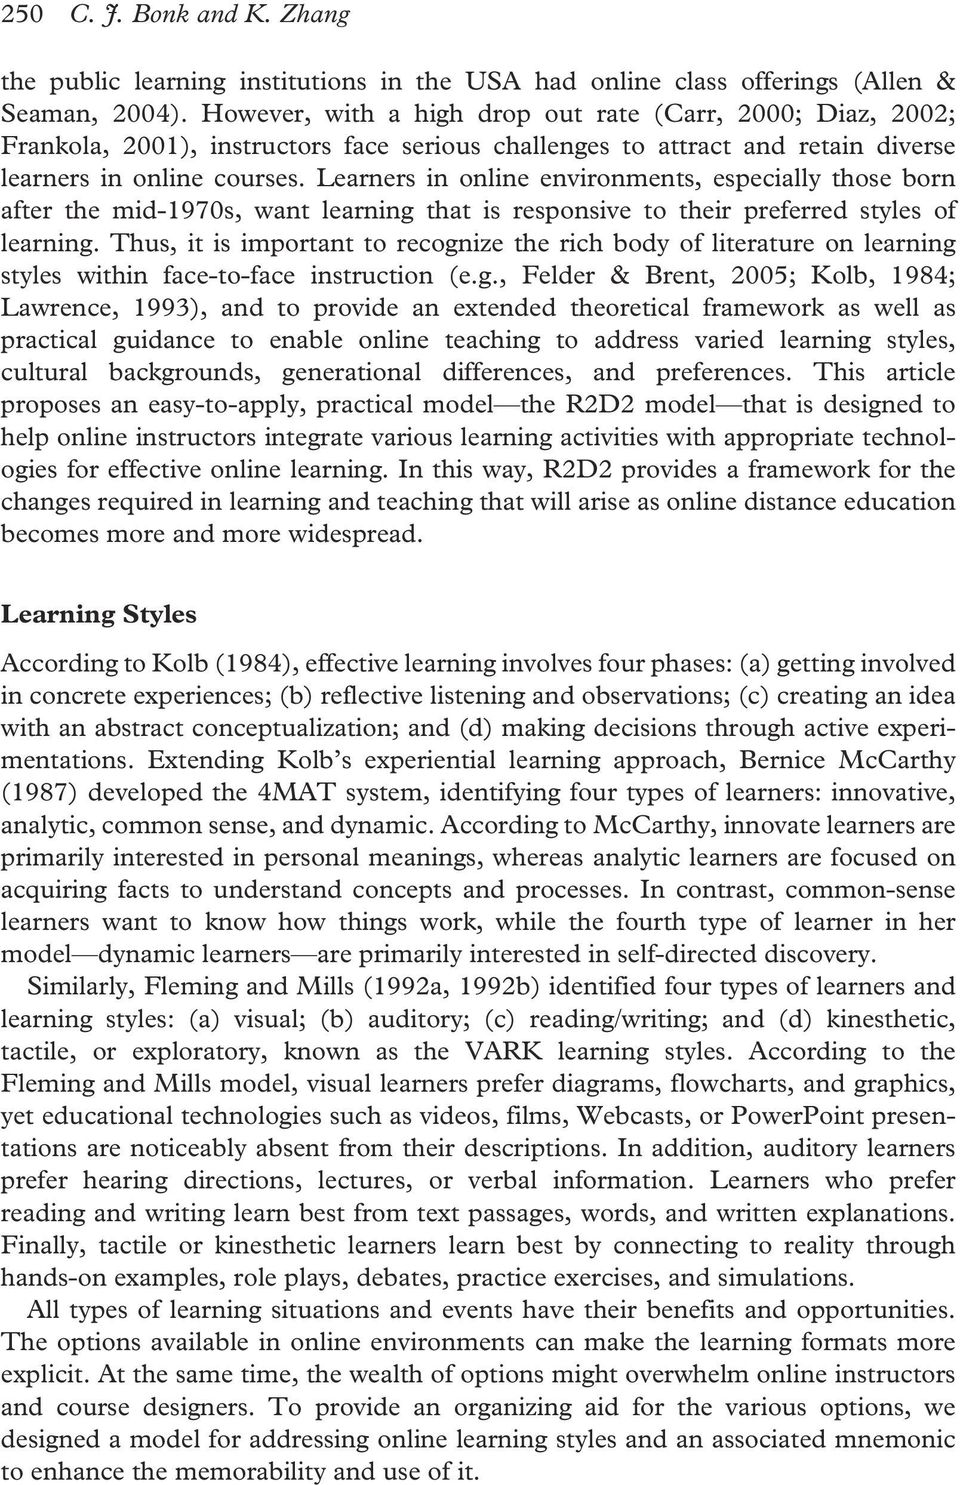 Learners in online environments, especially those born after the mid-1970s, want learning that is responsive to their preferred styles of learning.